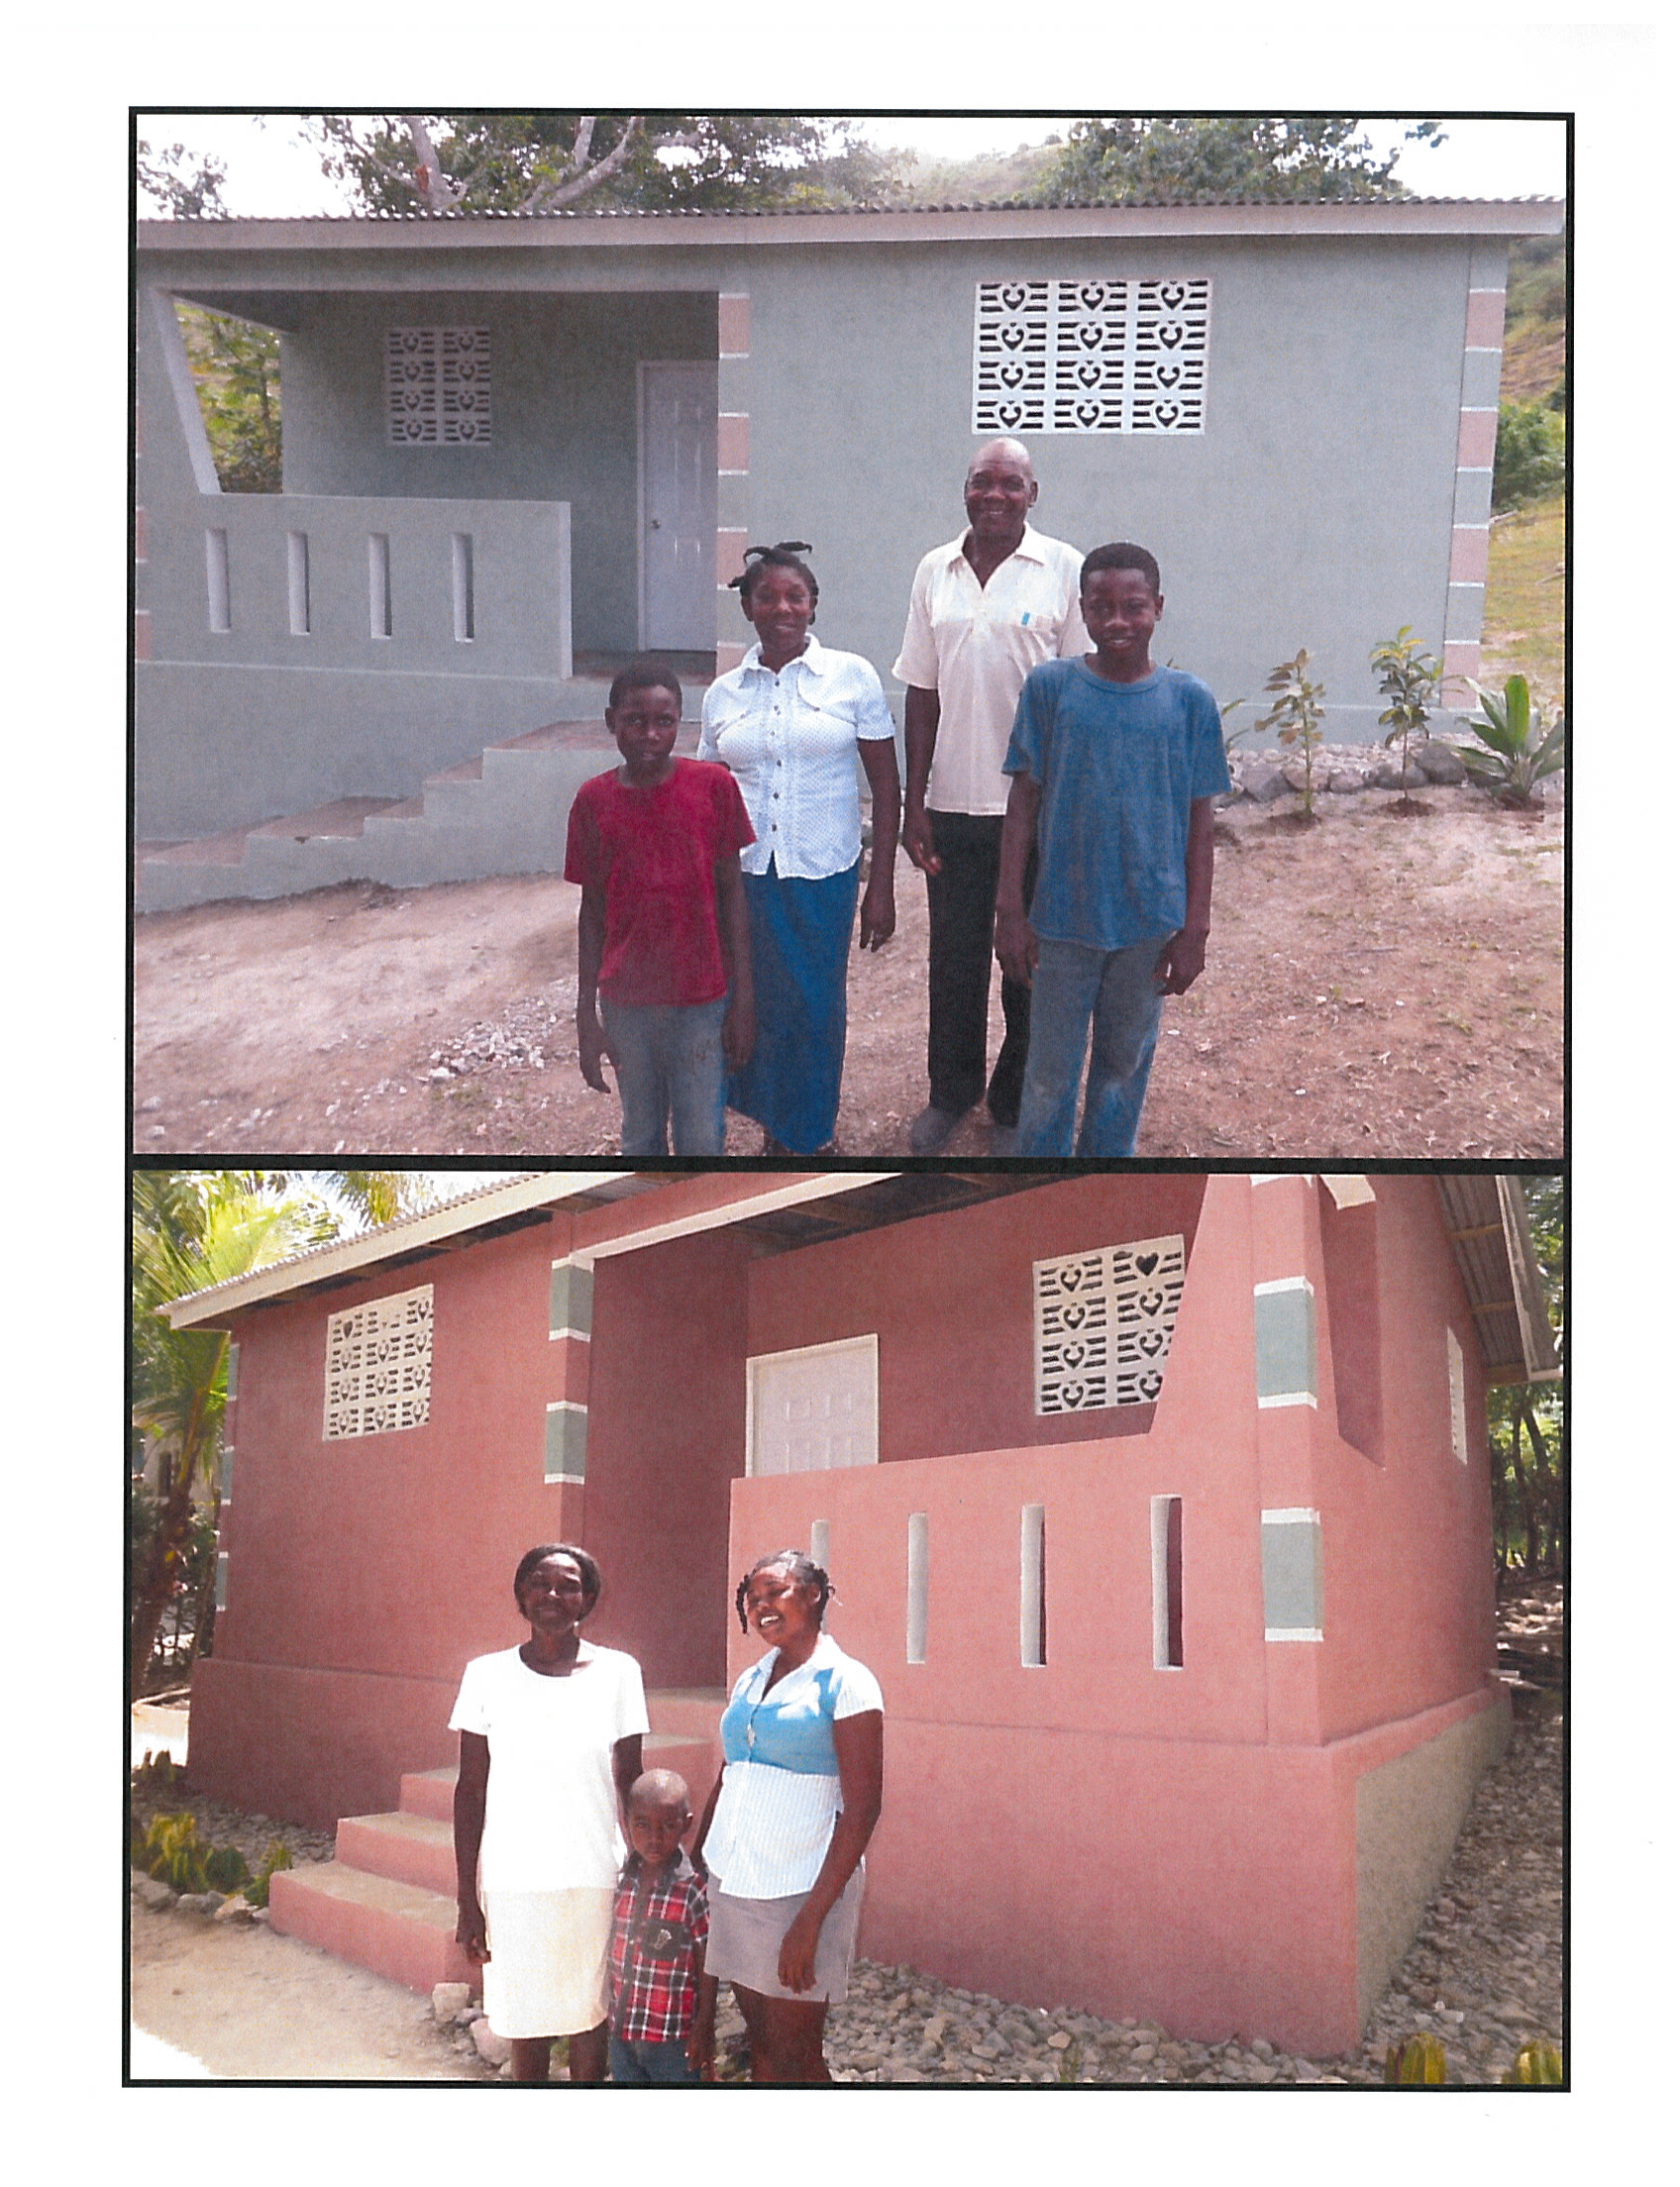 FOOD FOR THE POOR – BUILDING HOUSES IN HAITI